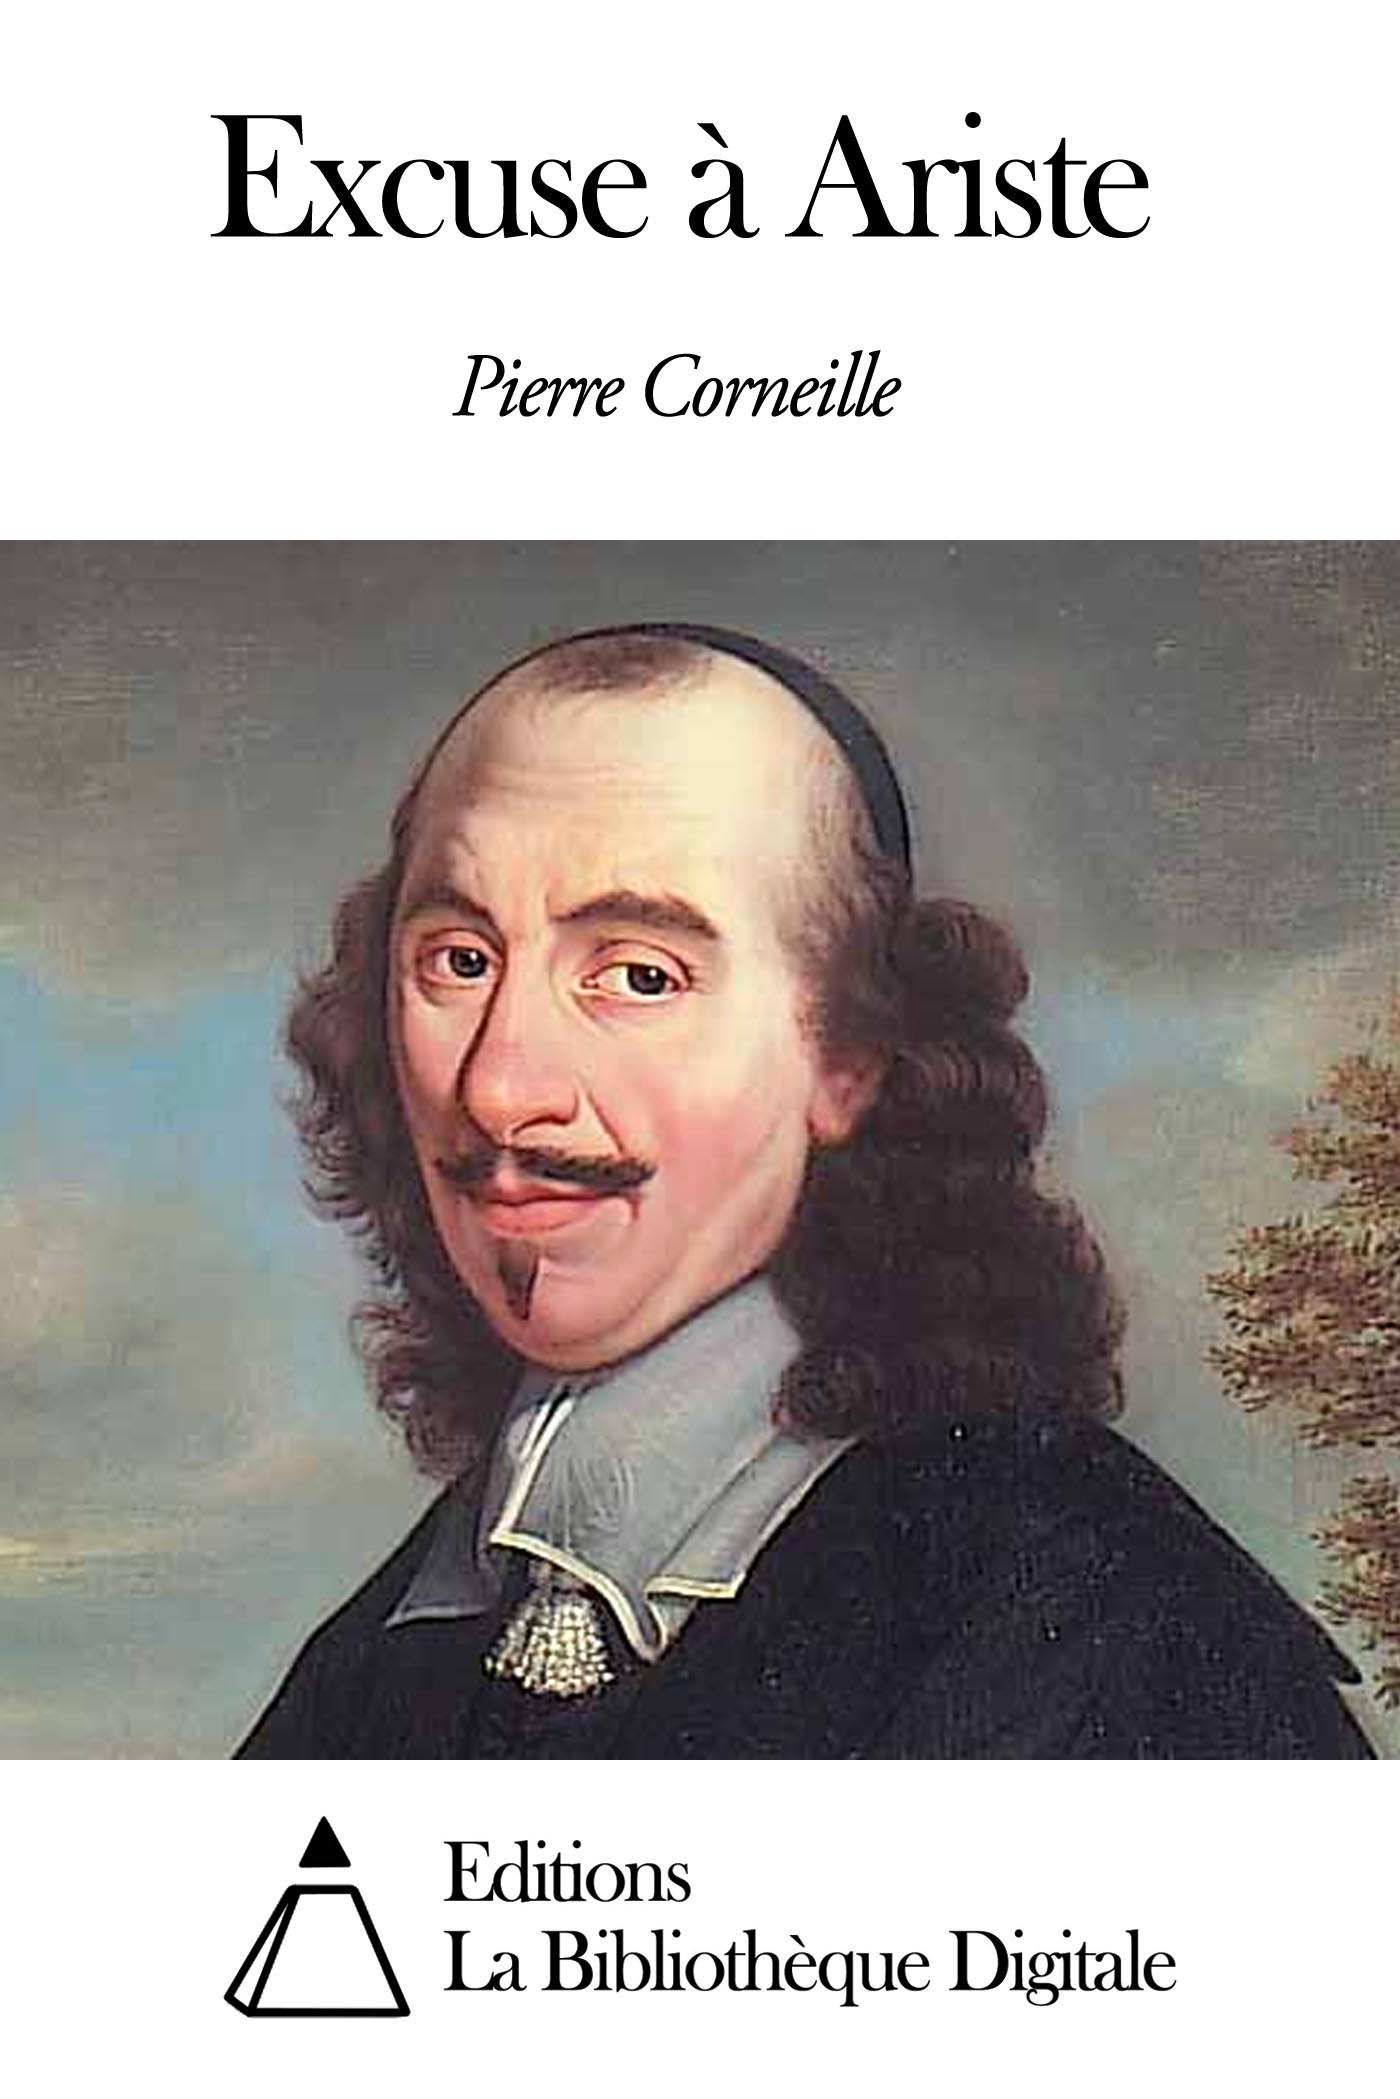 Pierre Corneille - Excuse à Ariste